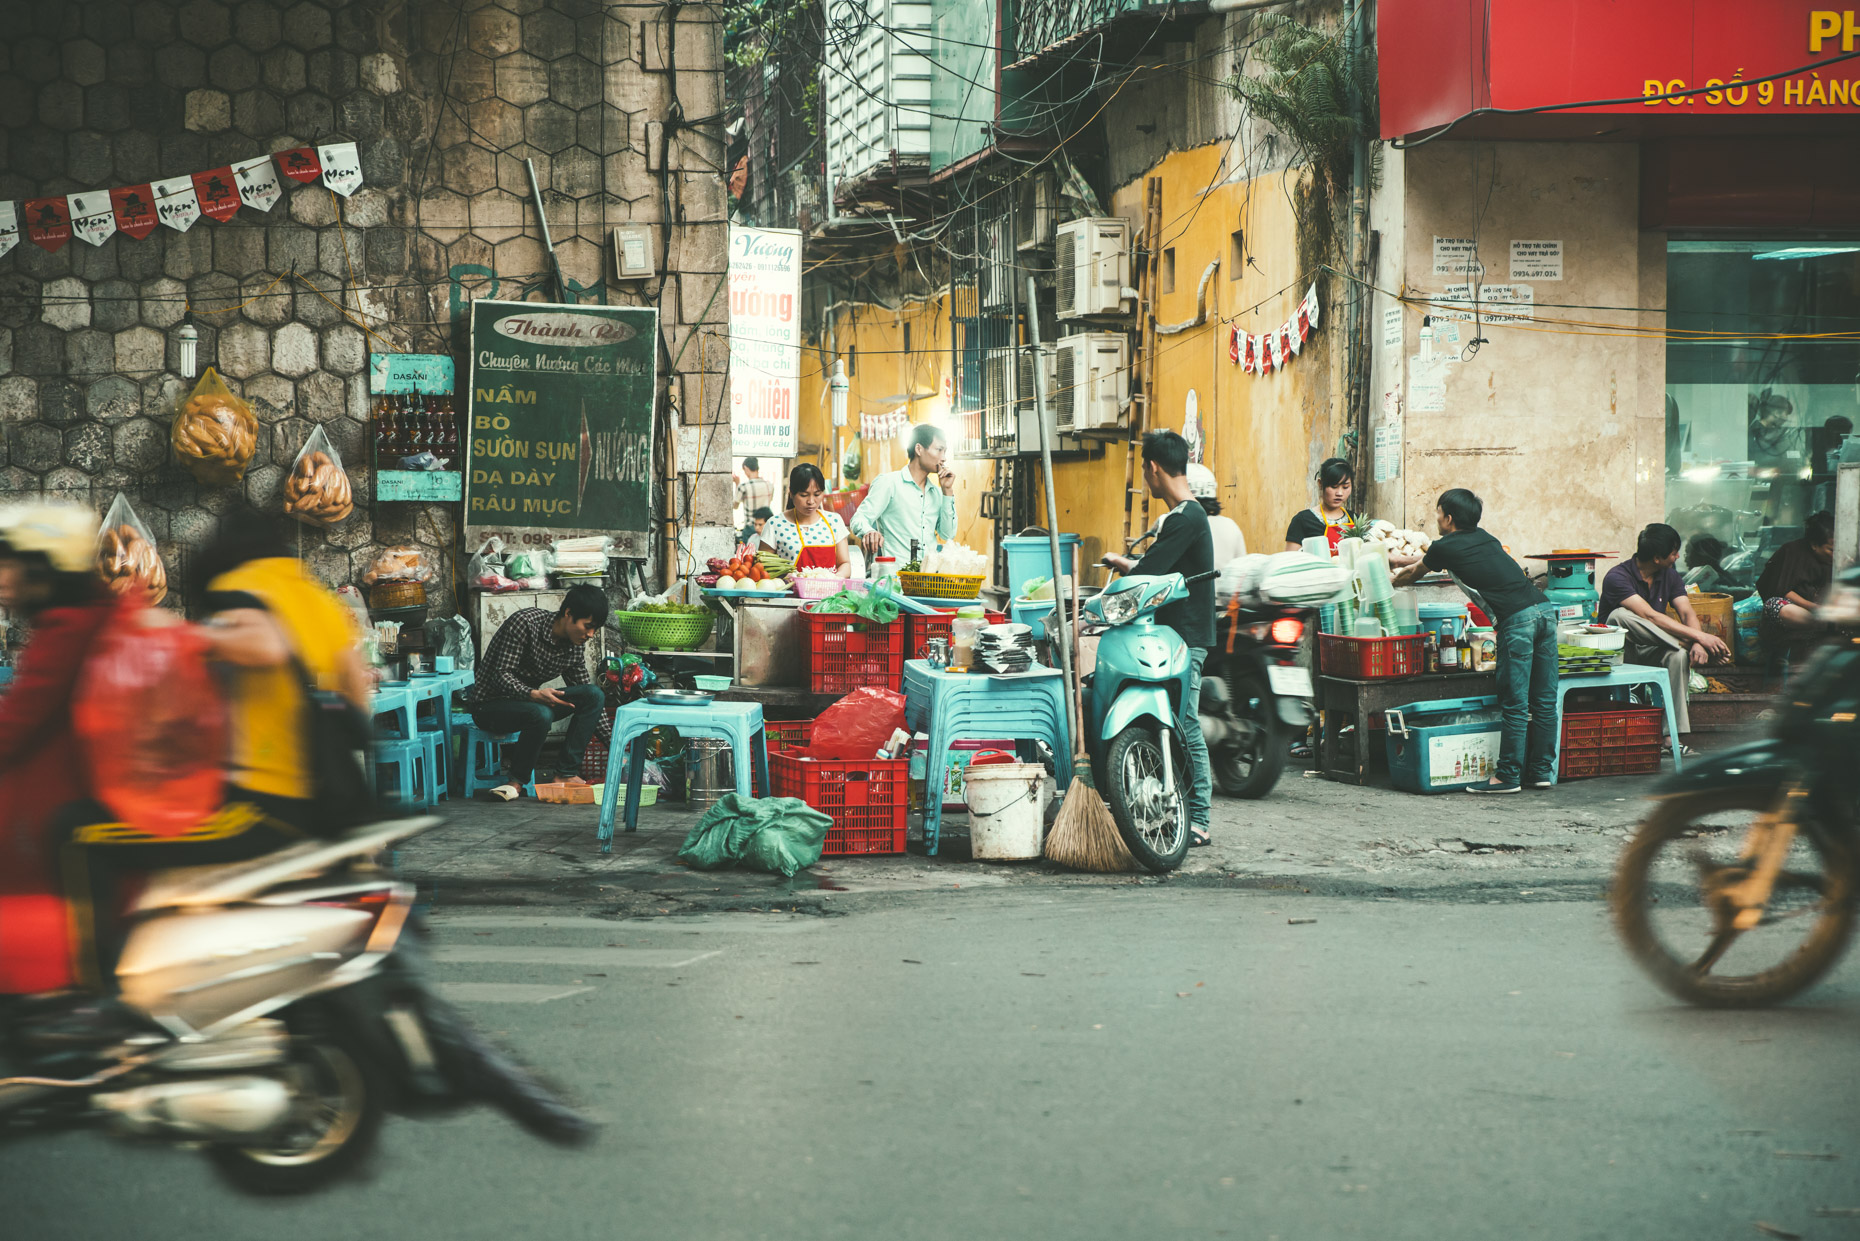 Busy street food vendors in Hanoi Vietnam